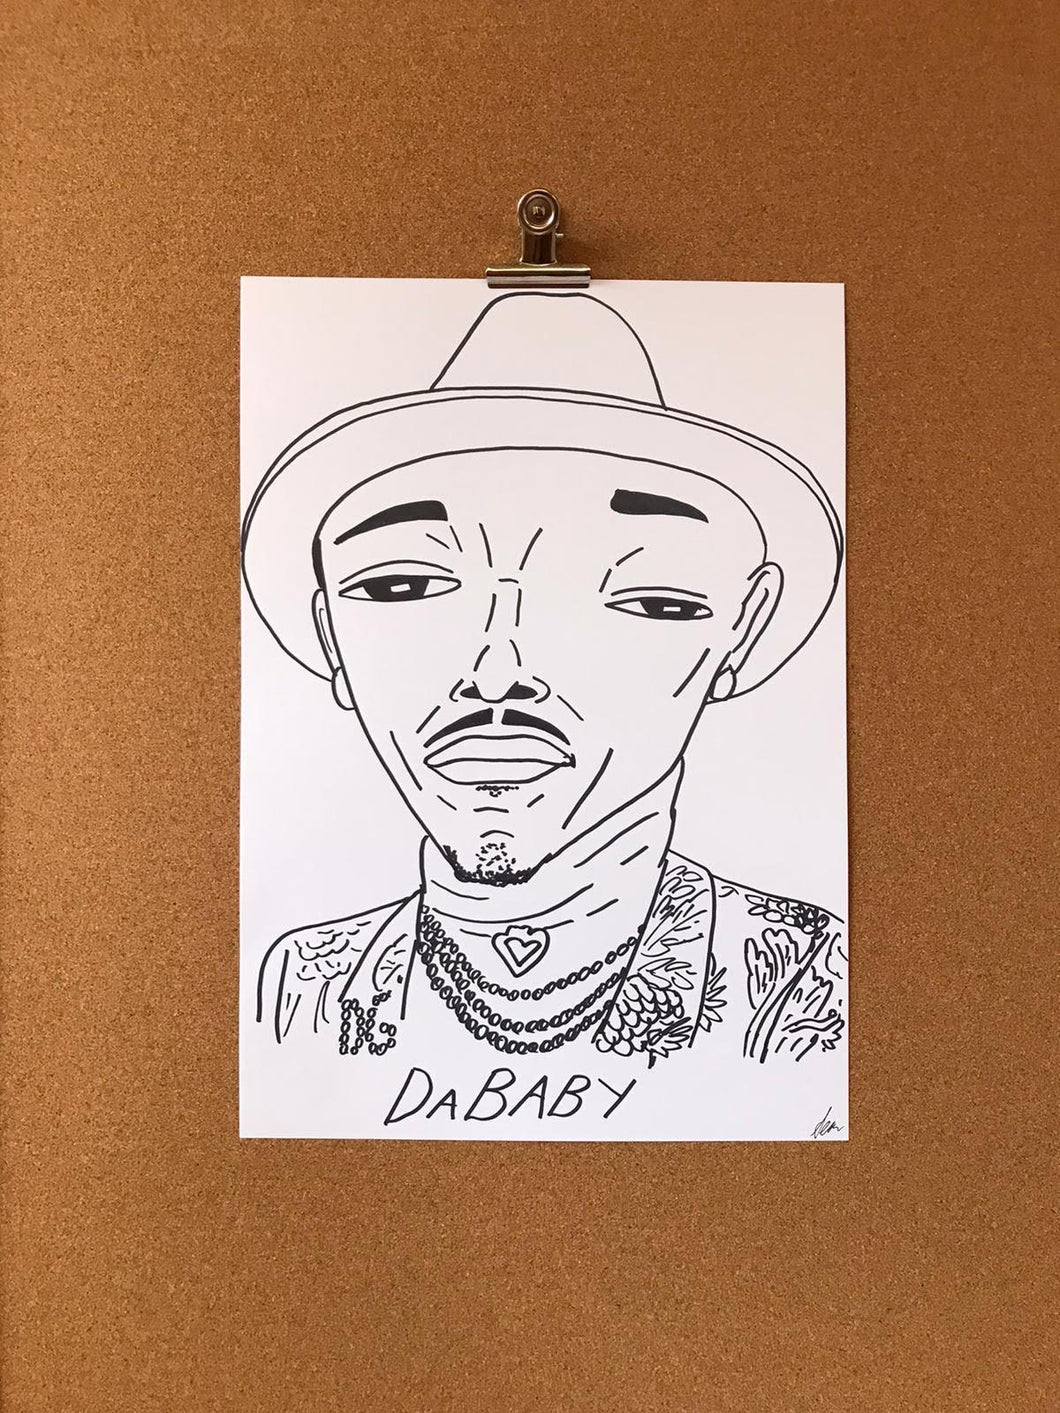 Badly Drawn Celebs - DaBaby - Grammys 2021 (Original Artwork - A3)